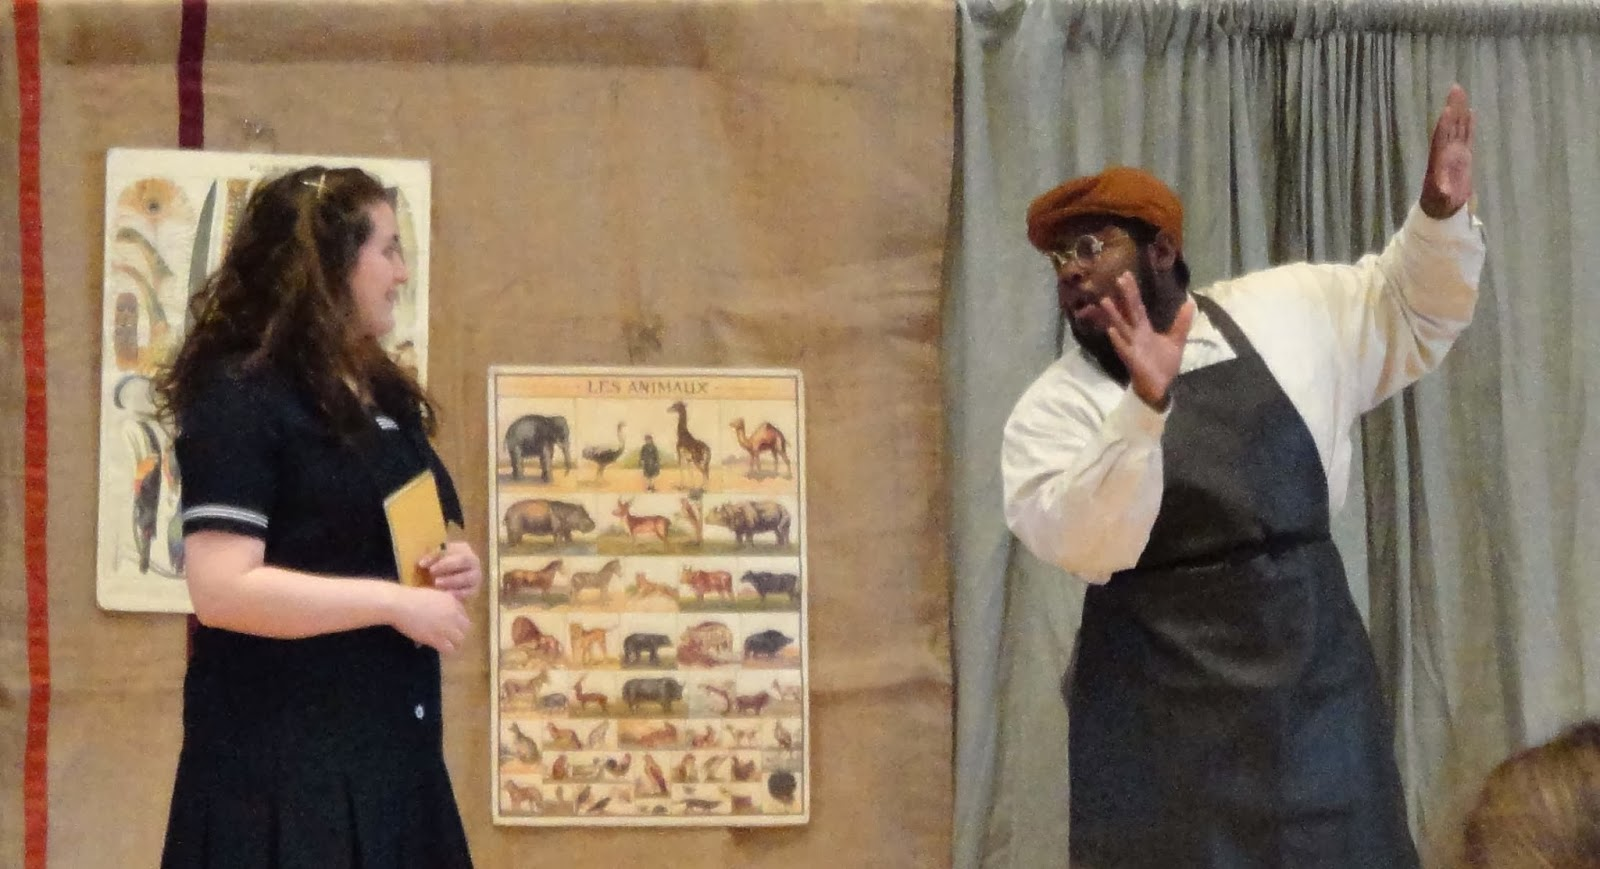 midway messenger george washington carver and friends play and dorothy kate royzcki listens to agricultural chemist george washington carver antony russell